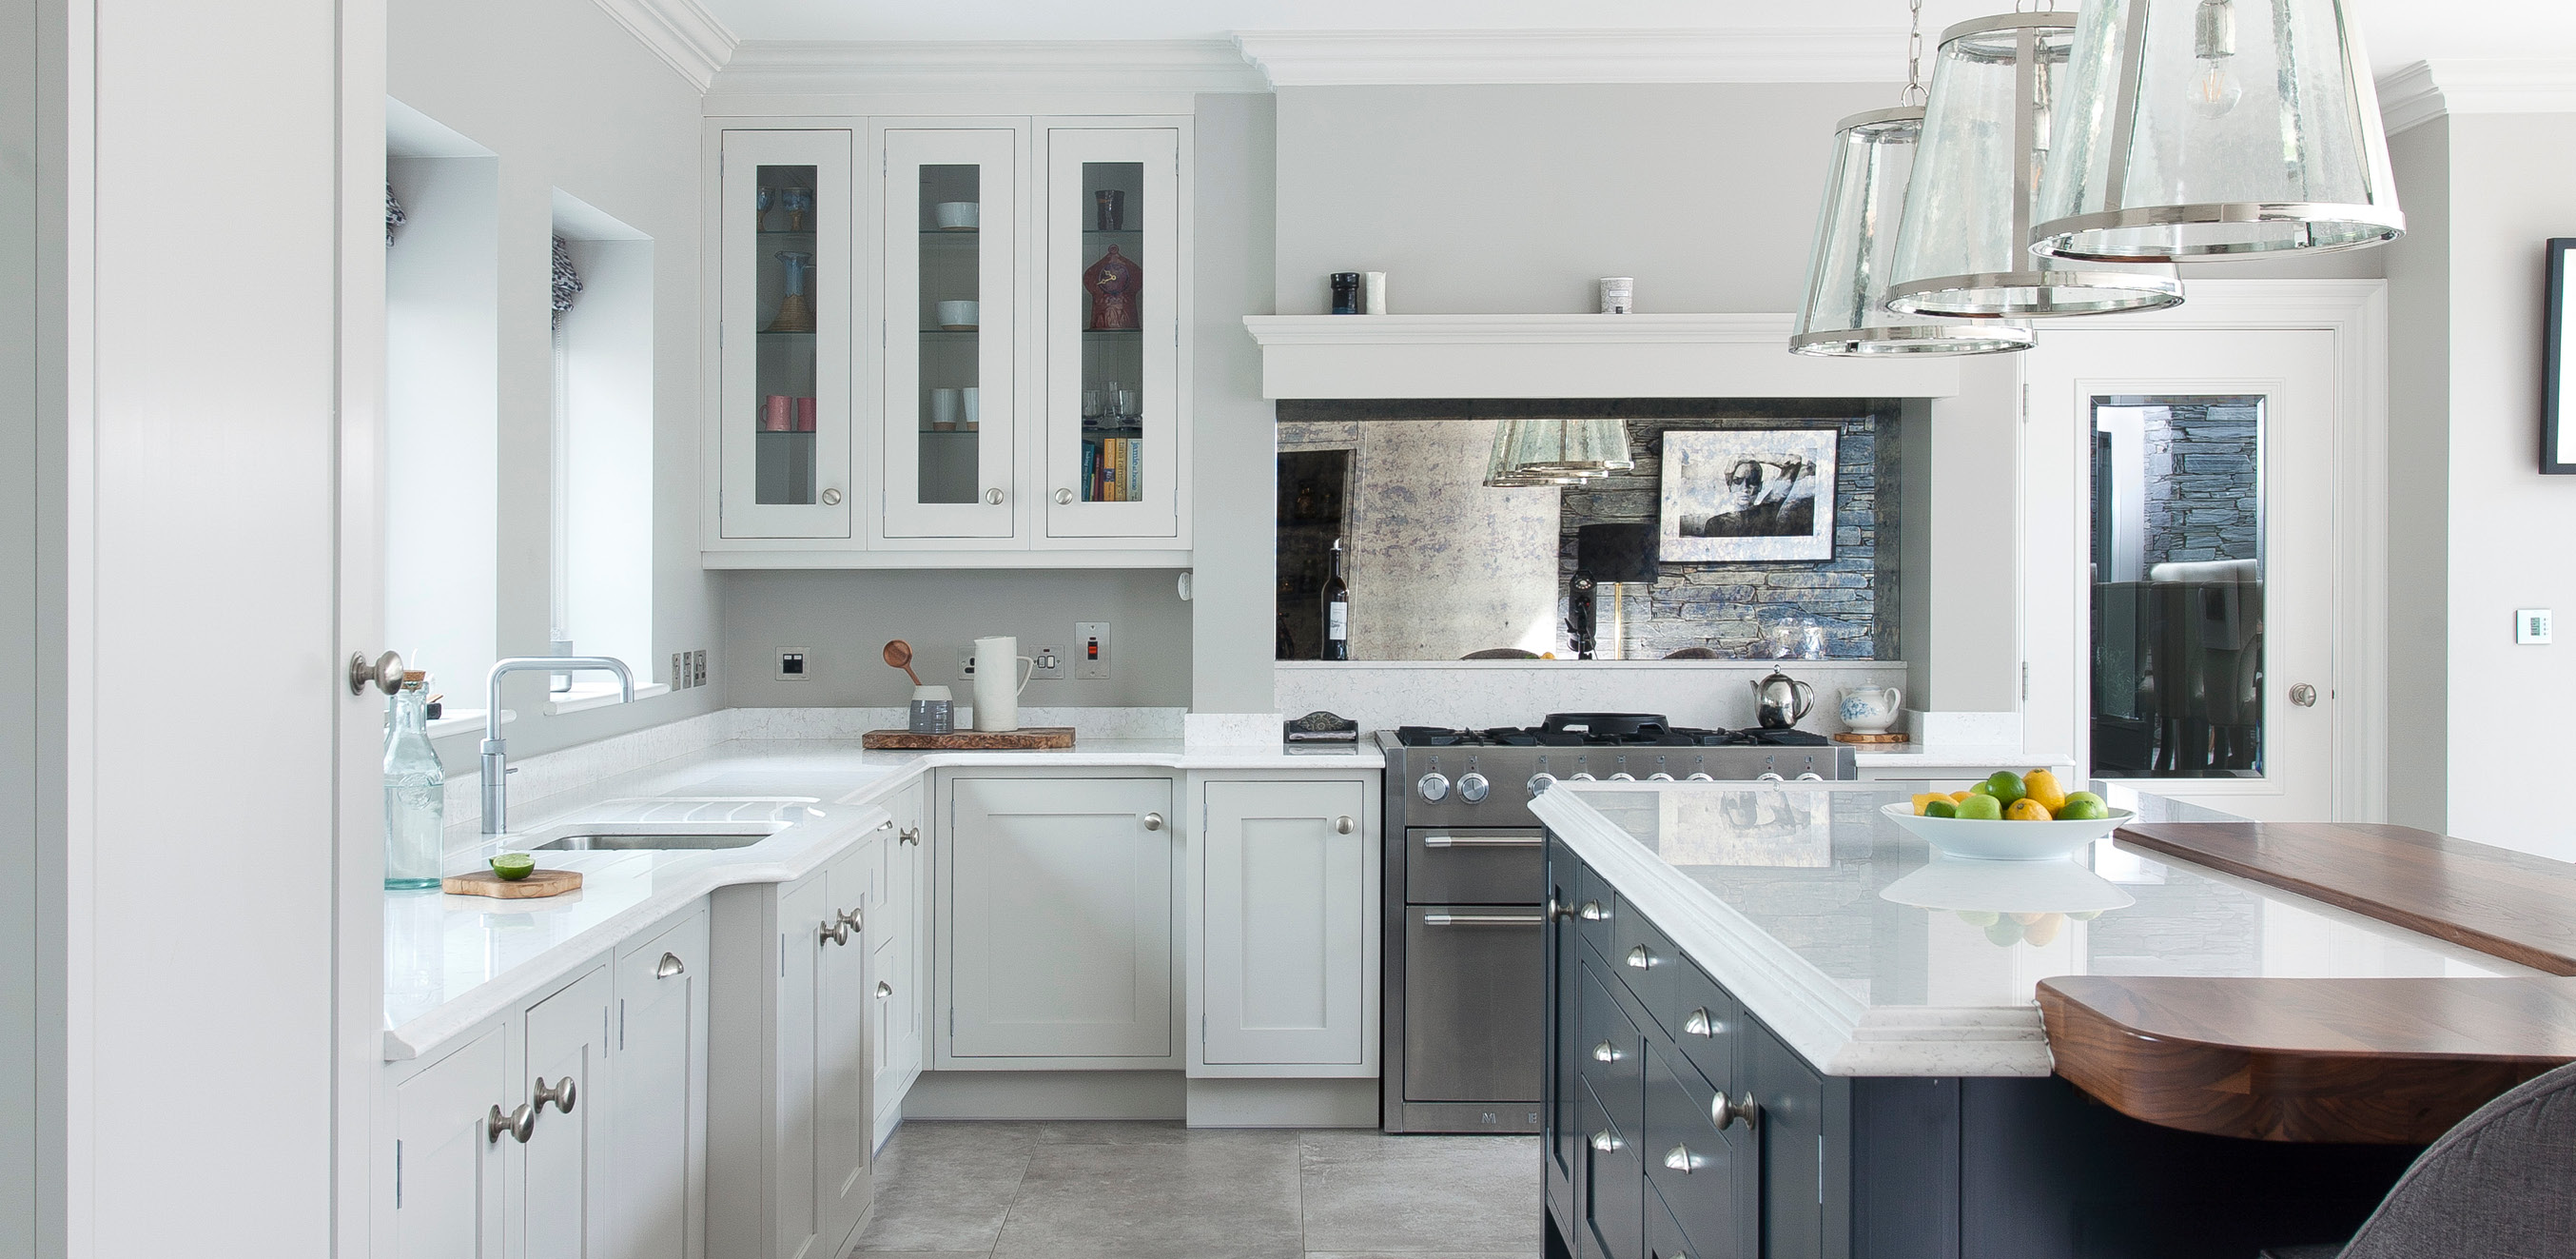 Classic Contemporary Kitchen Greenhill Kitchens County Tyrone Northern Ireland » Modern